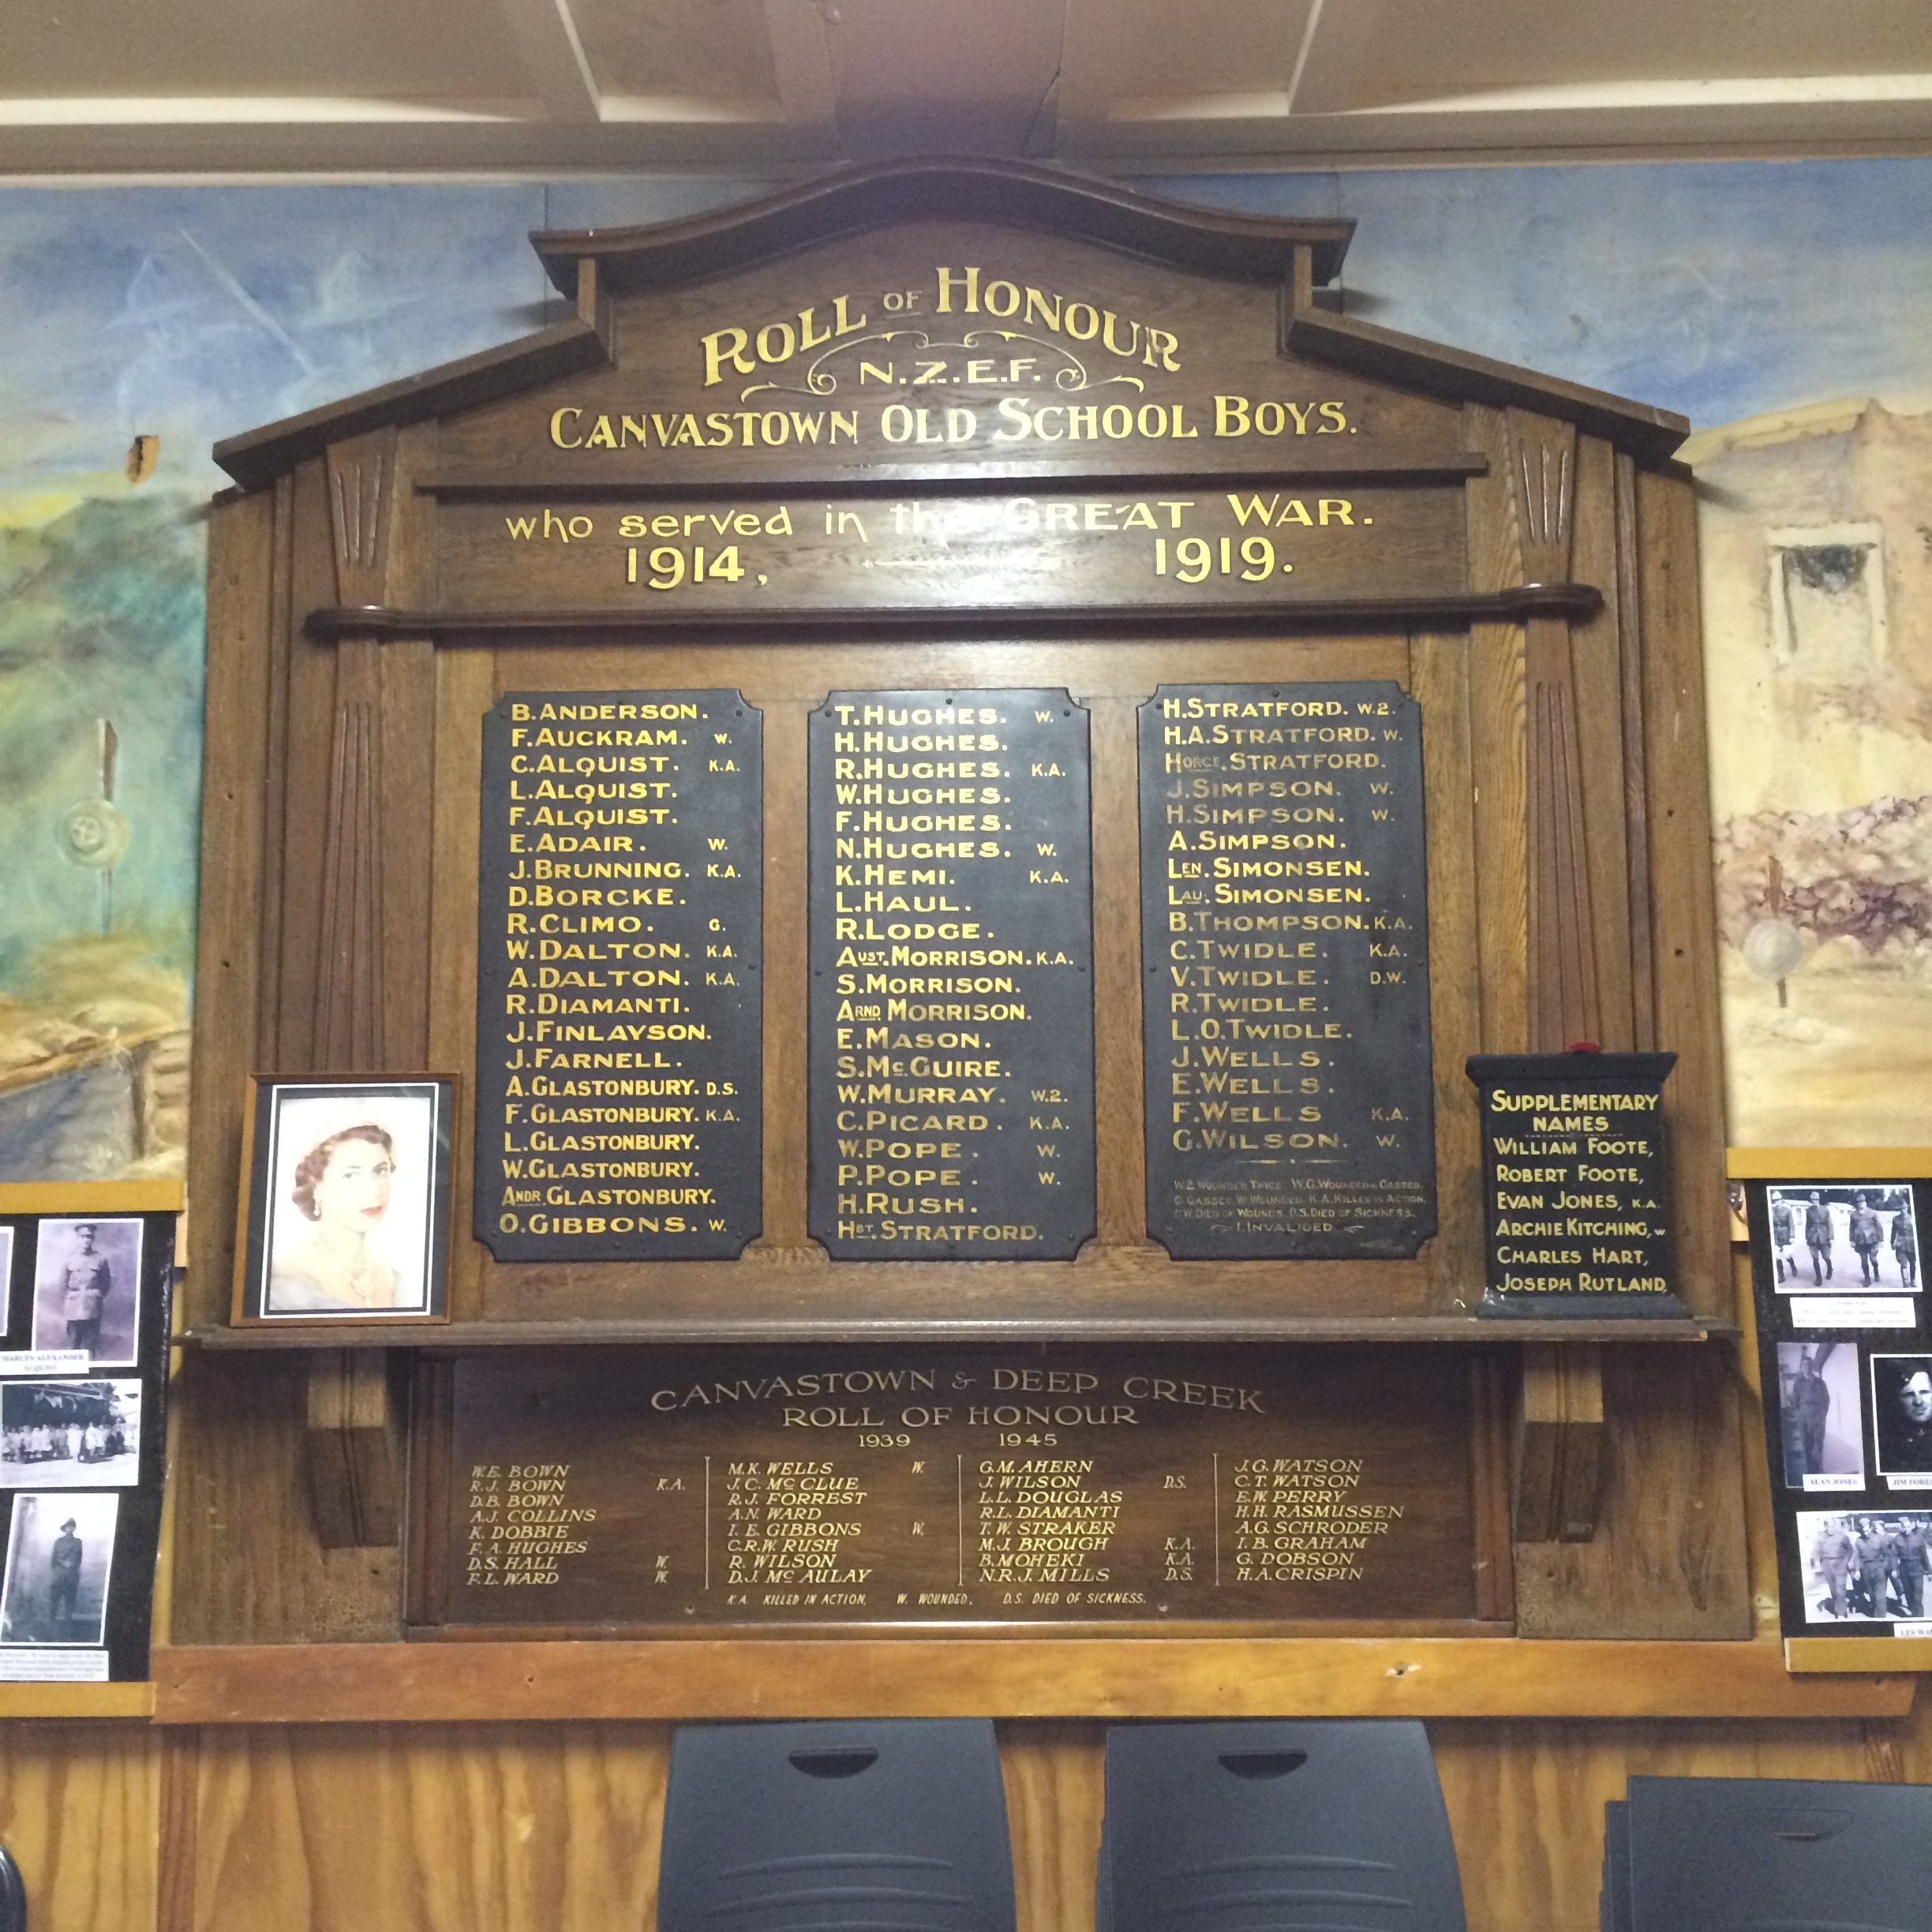 Canvastown School - The Walking with an Anzac Team found the first clue in Henry's story when they visited Canvastown School. This Roll of Honour takes pride of place in the community hall and is surrounded by photos and memories from the district. Further research on the same platforms you have used today allowed us to discover Herny's Story.